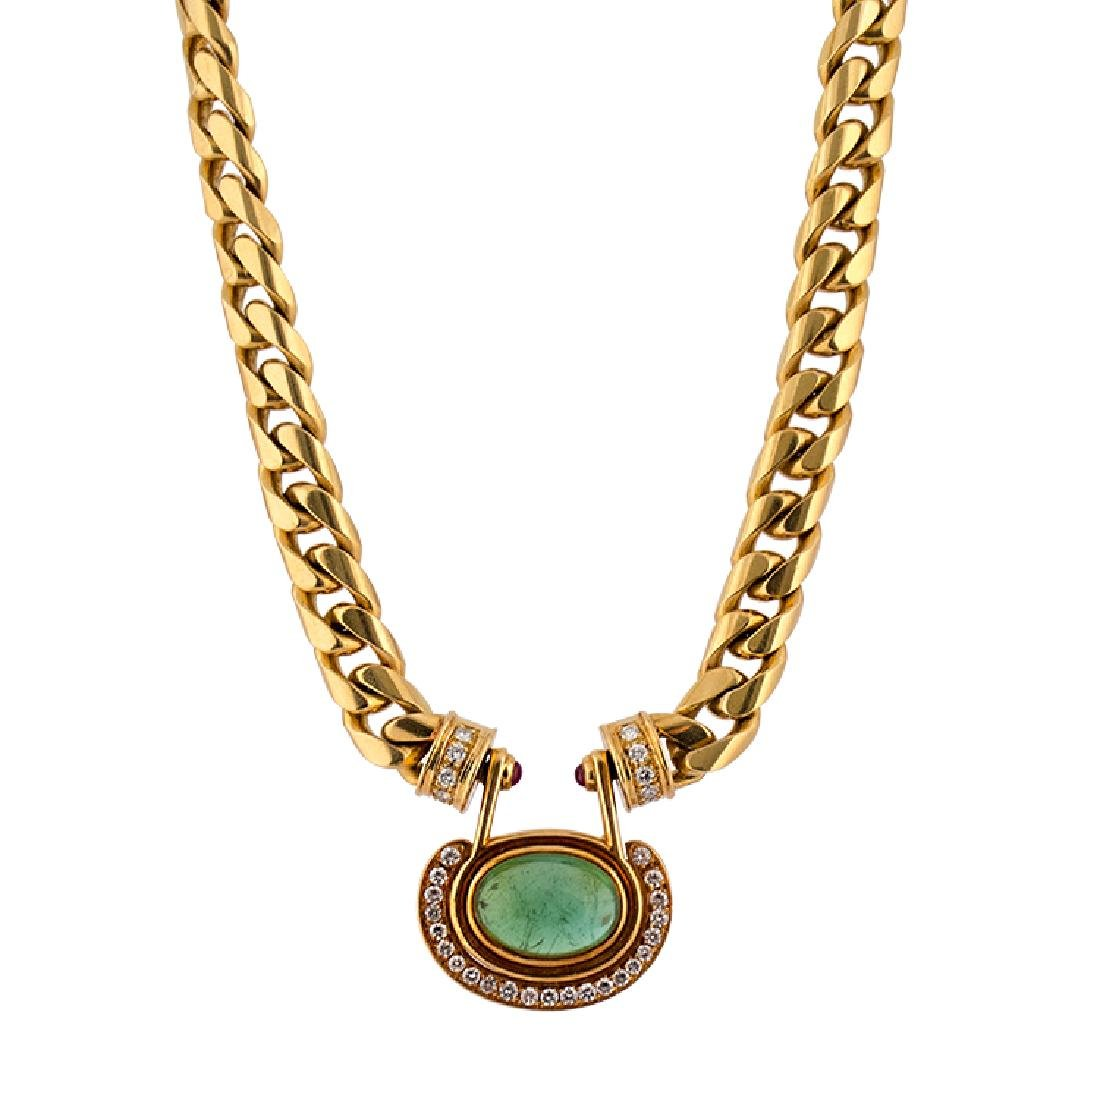 Necklace with central green stone and diamonds